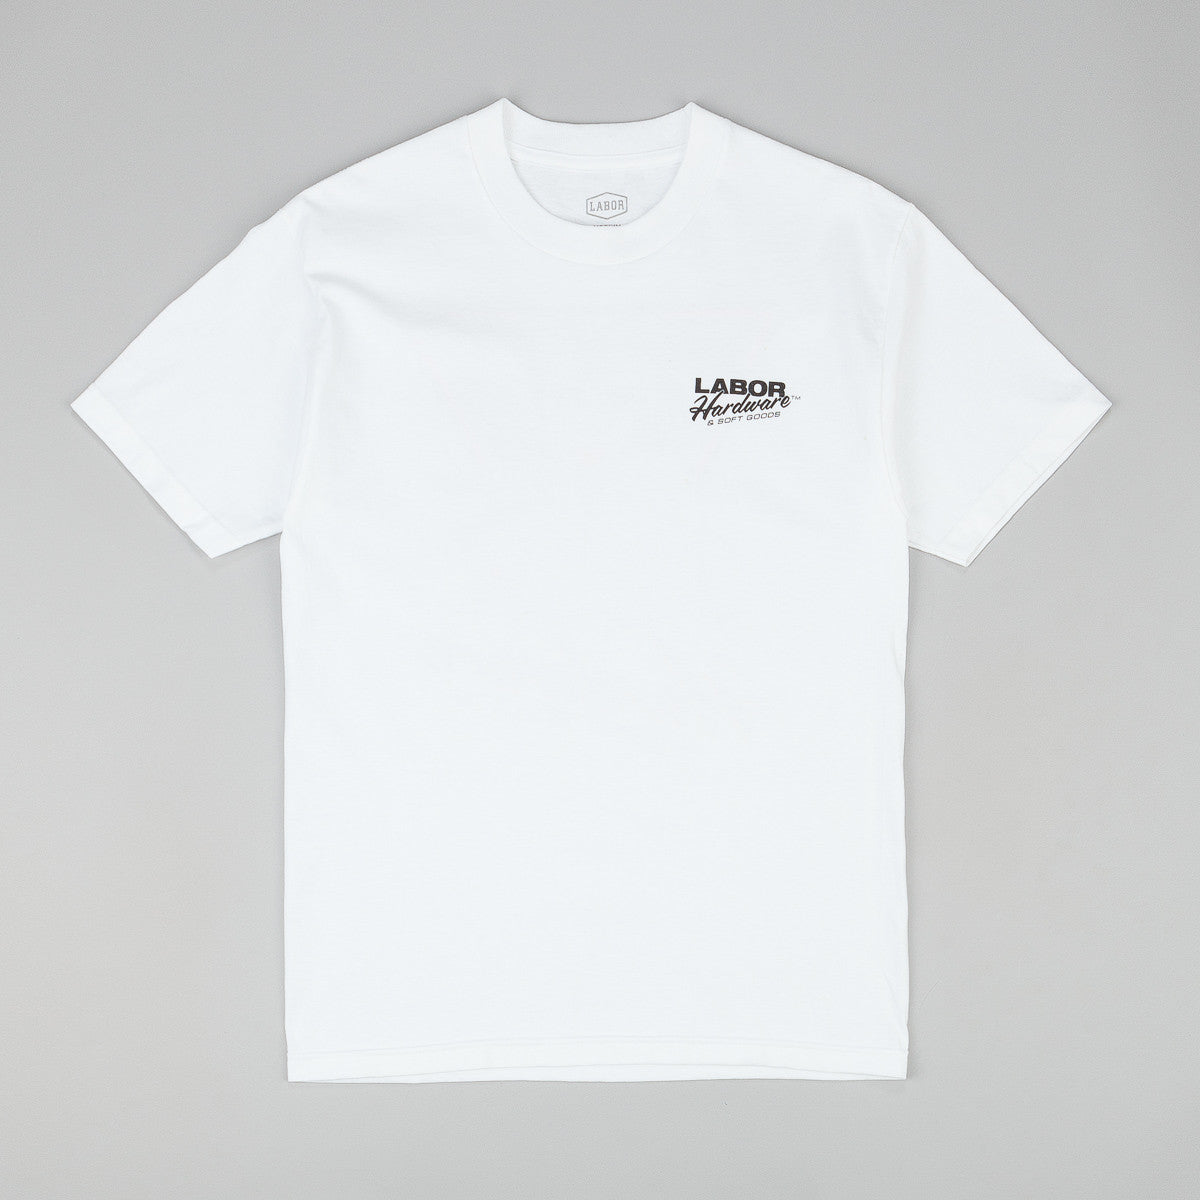 Labor Hardware & Softgoods T-Shirt